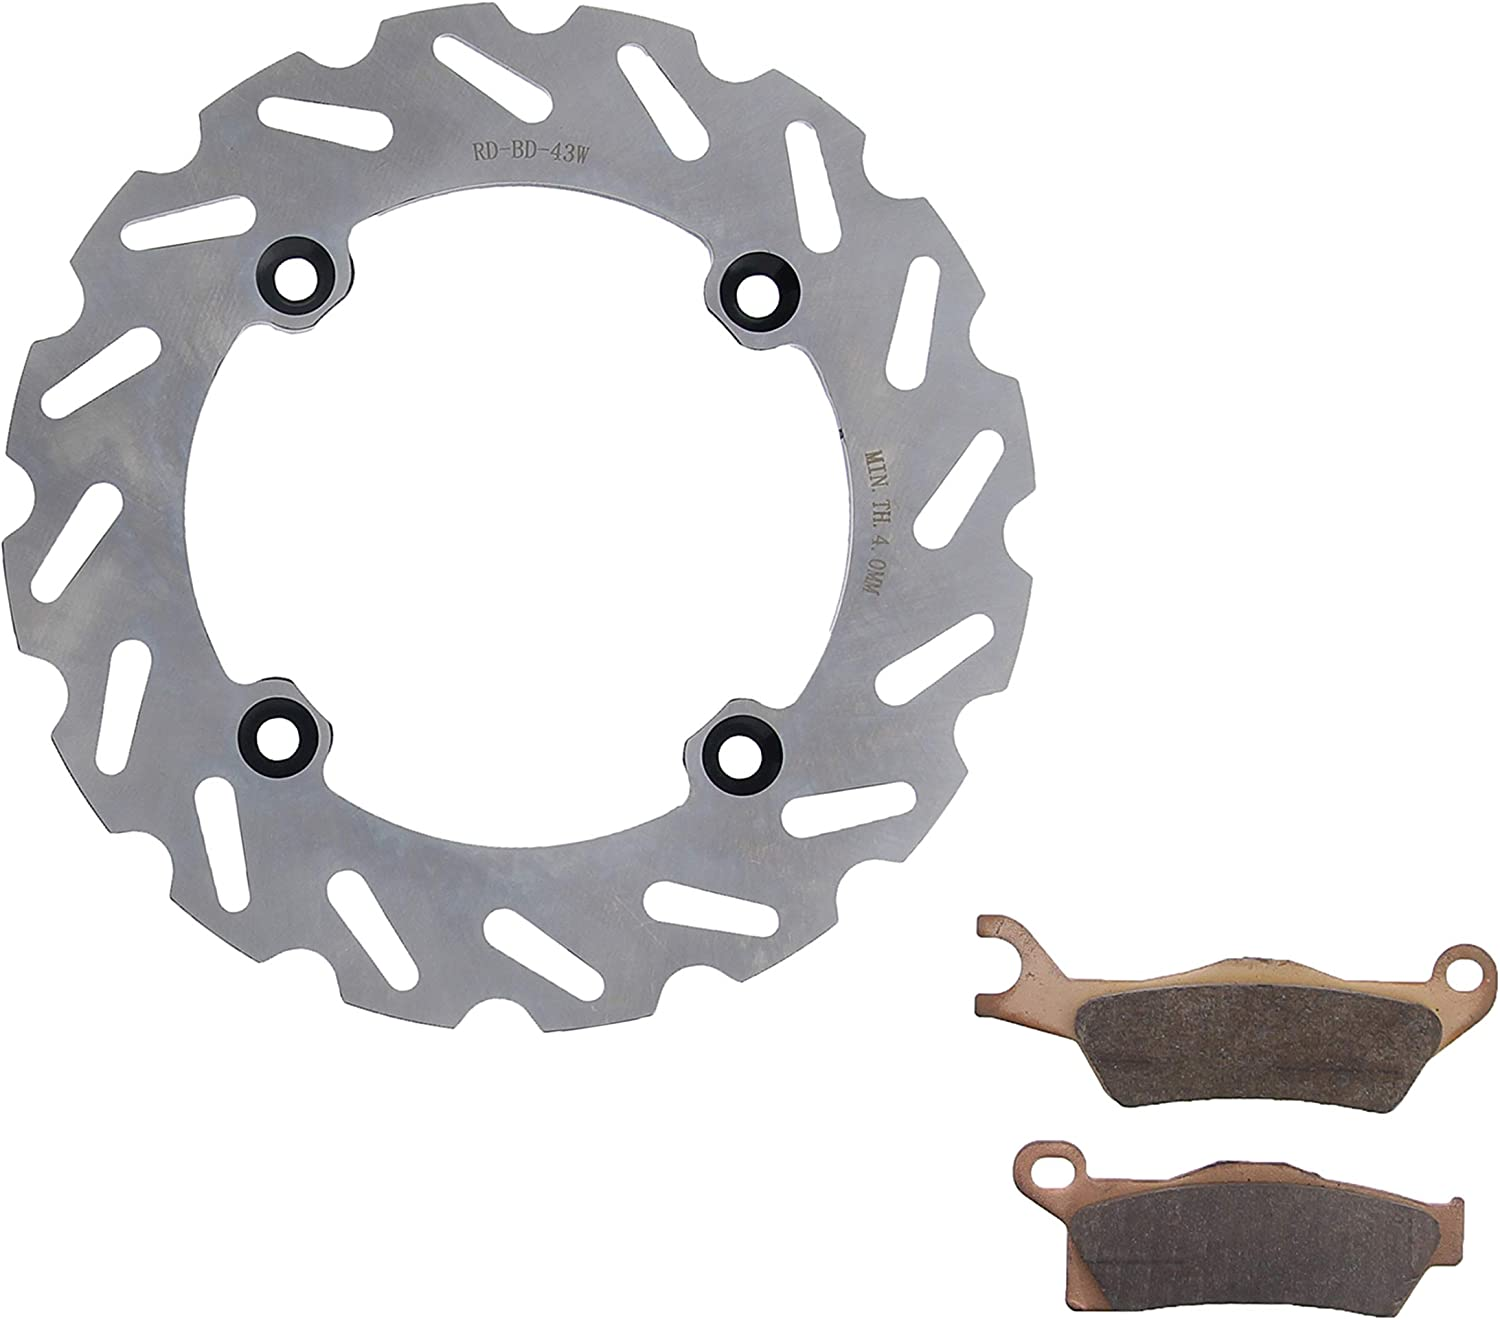 2013-2015 fits Can-Am Outlander Max XT 1000 Rear RipTide Brake Rotor and Brake Pads